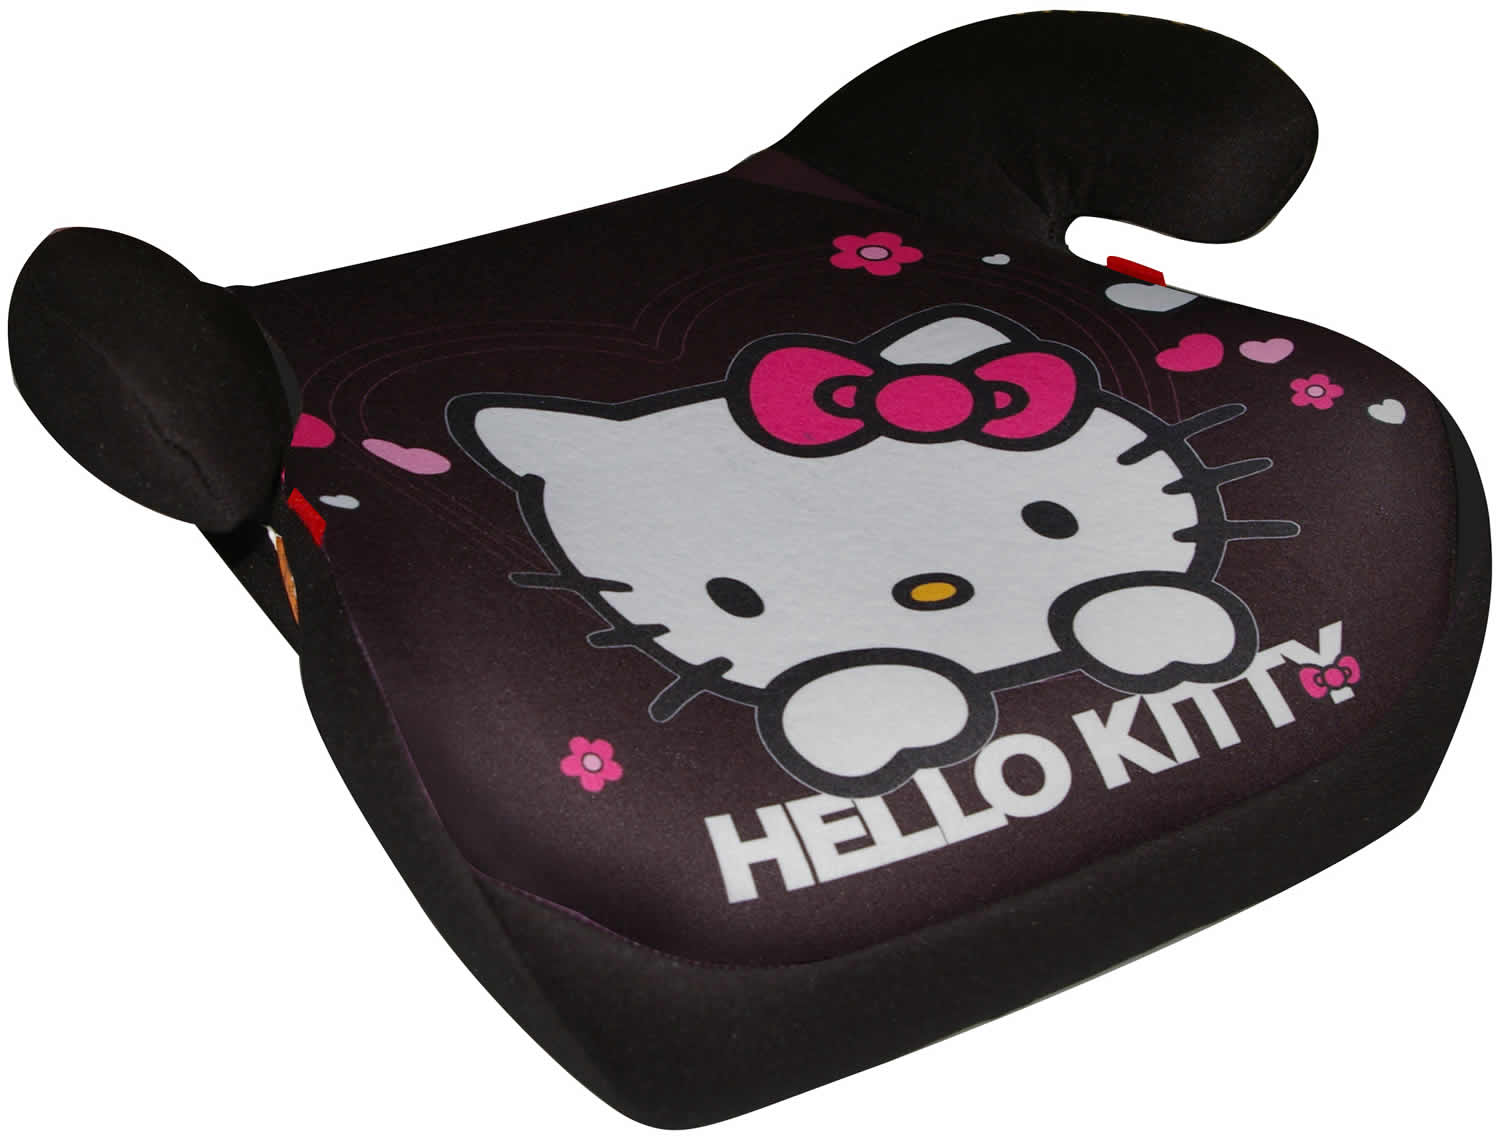 auto kindersitz sitzerh hung hello kitty 15 36 kg ebay. Black Bedroom Furniture Sets. Home Design Ideas